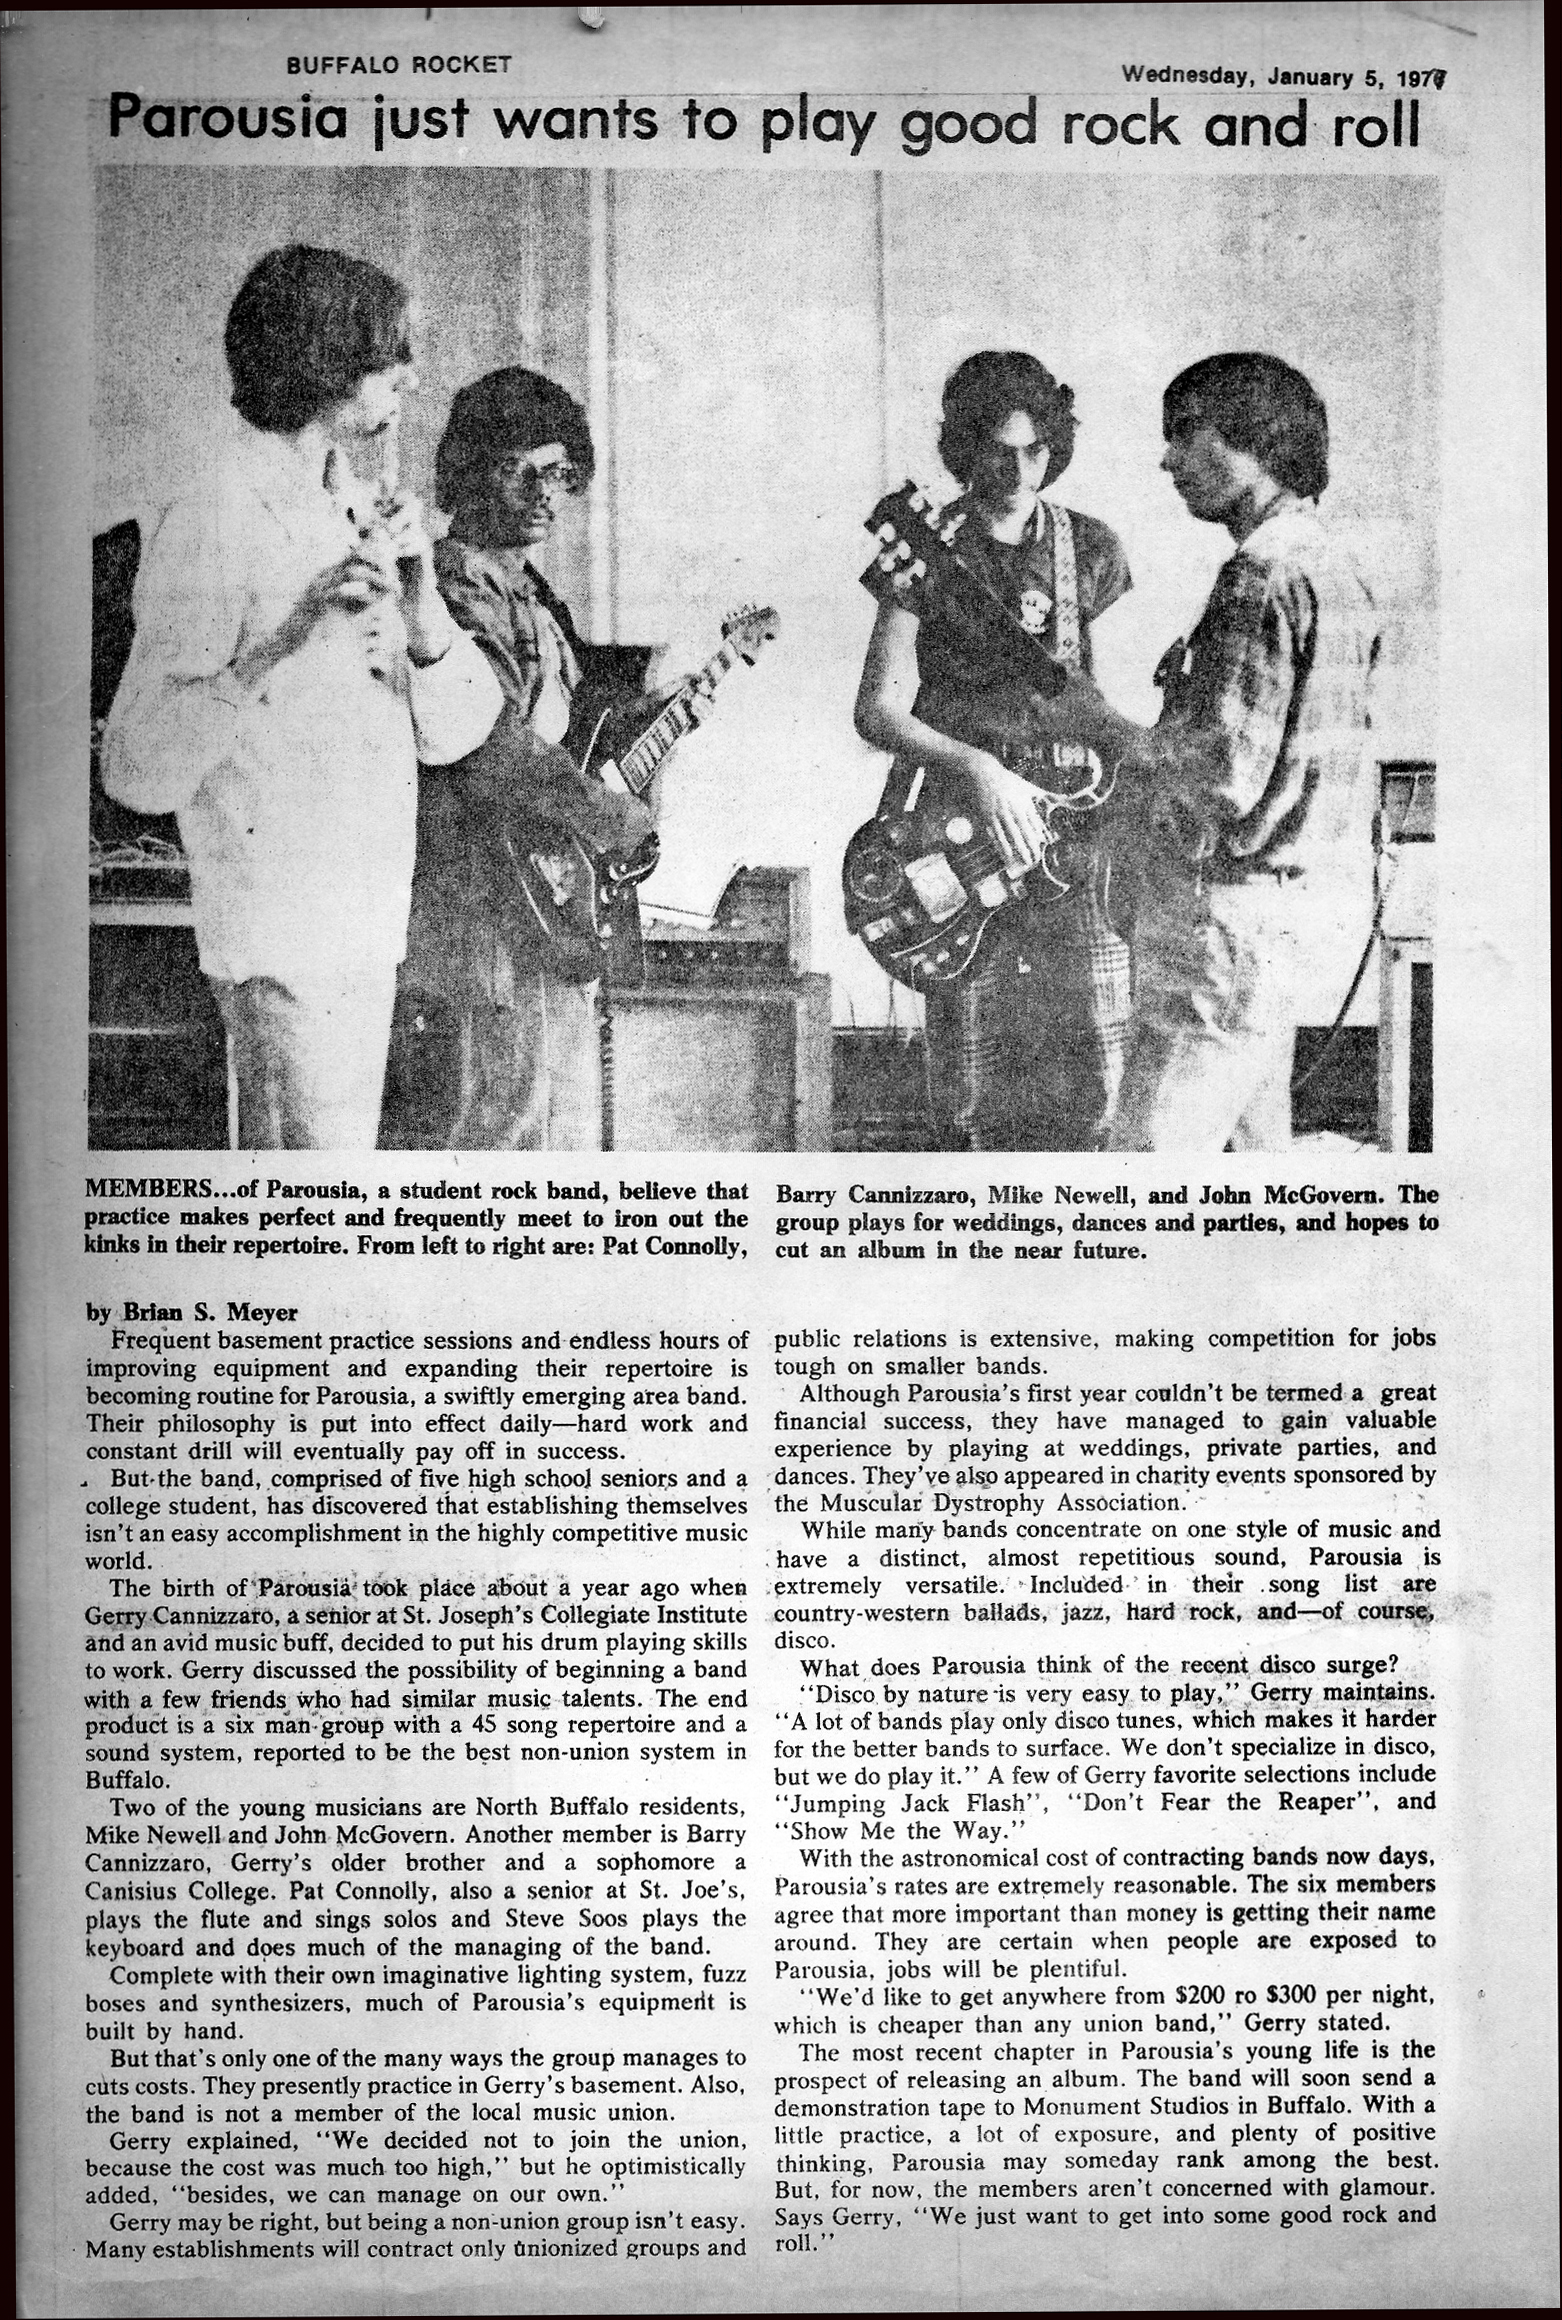 Parousia Band review in The Buffalo Rocket Newspaper January 5th 1977